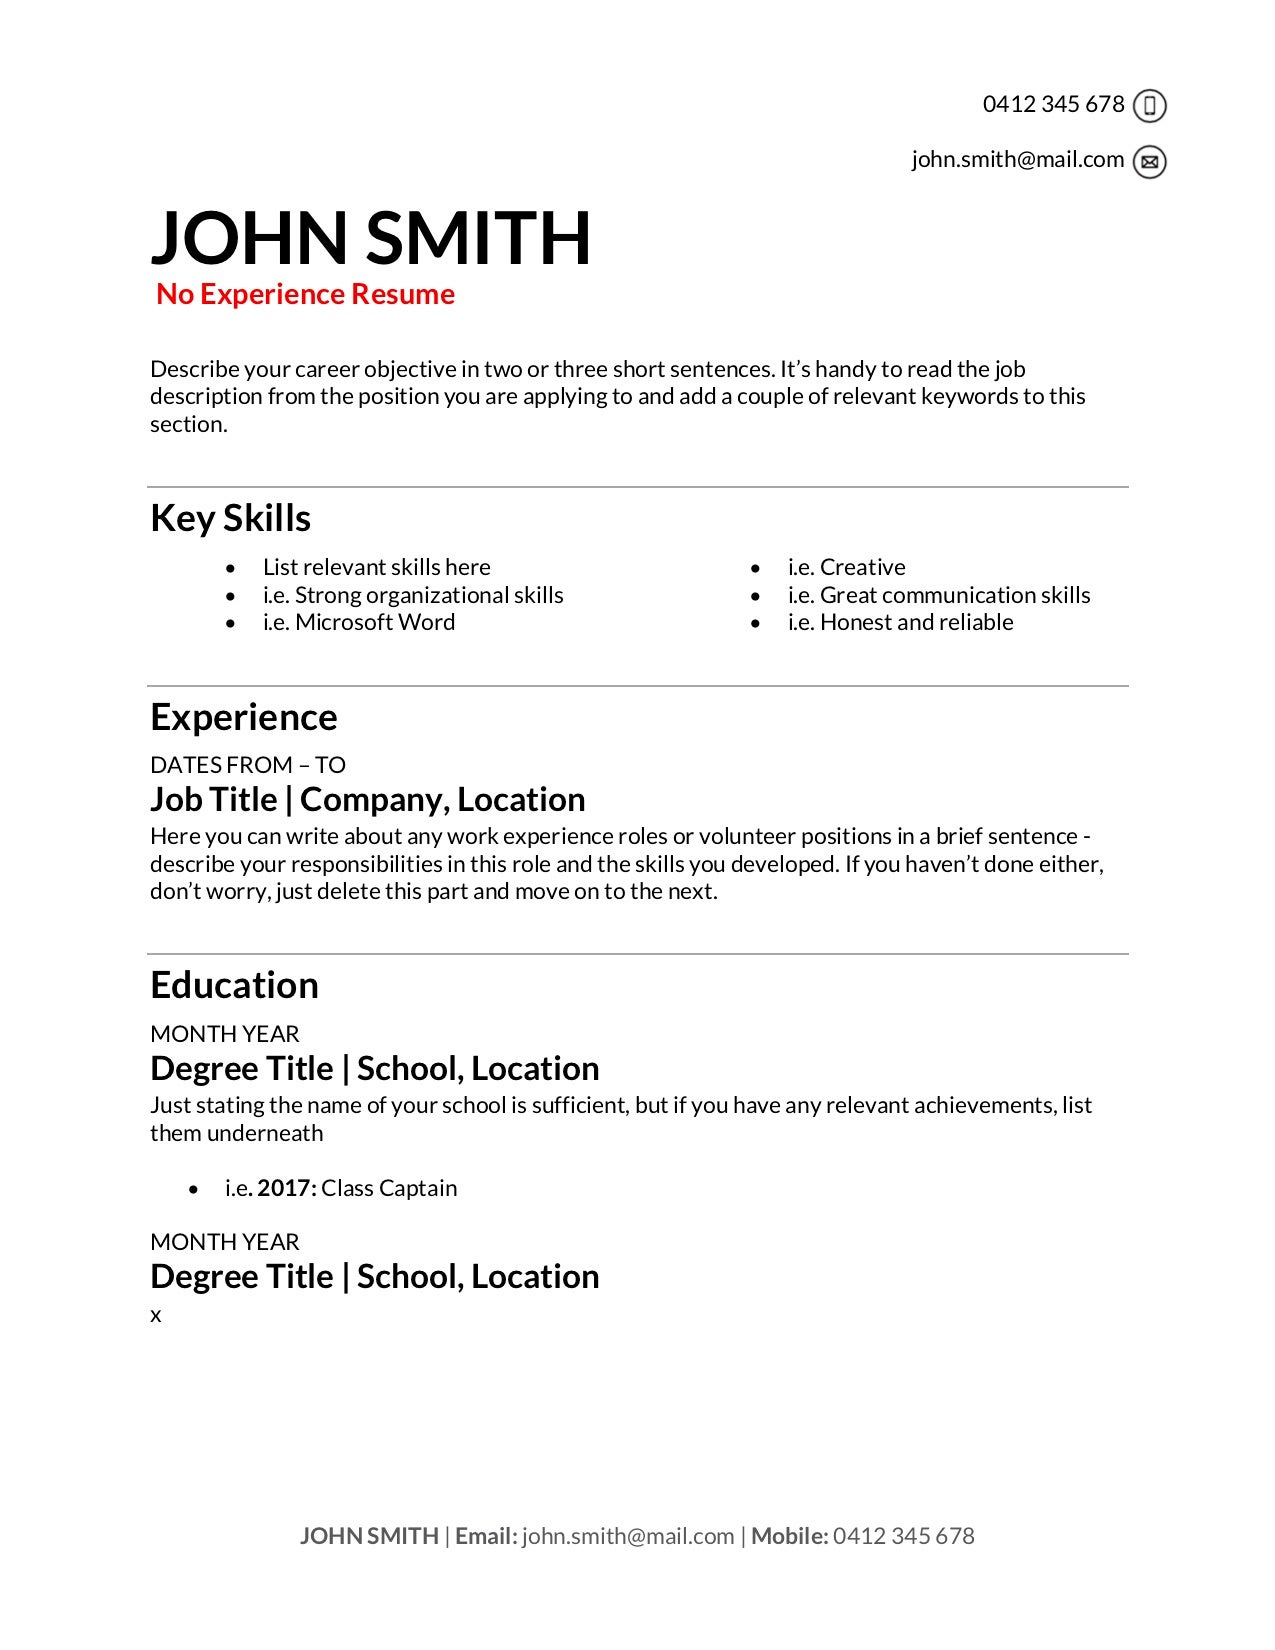 Free Resume Templates Download How To Write A Resume In 2020